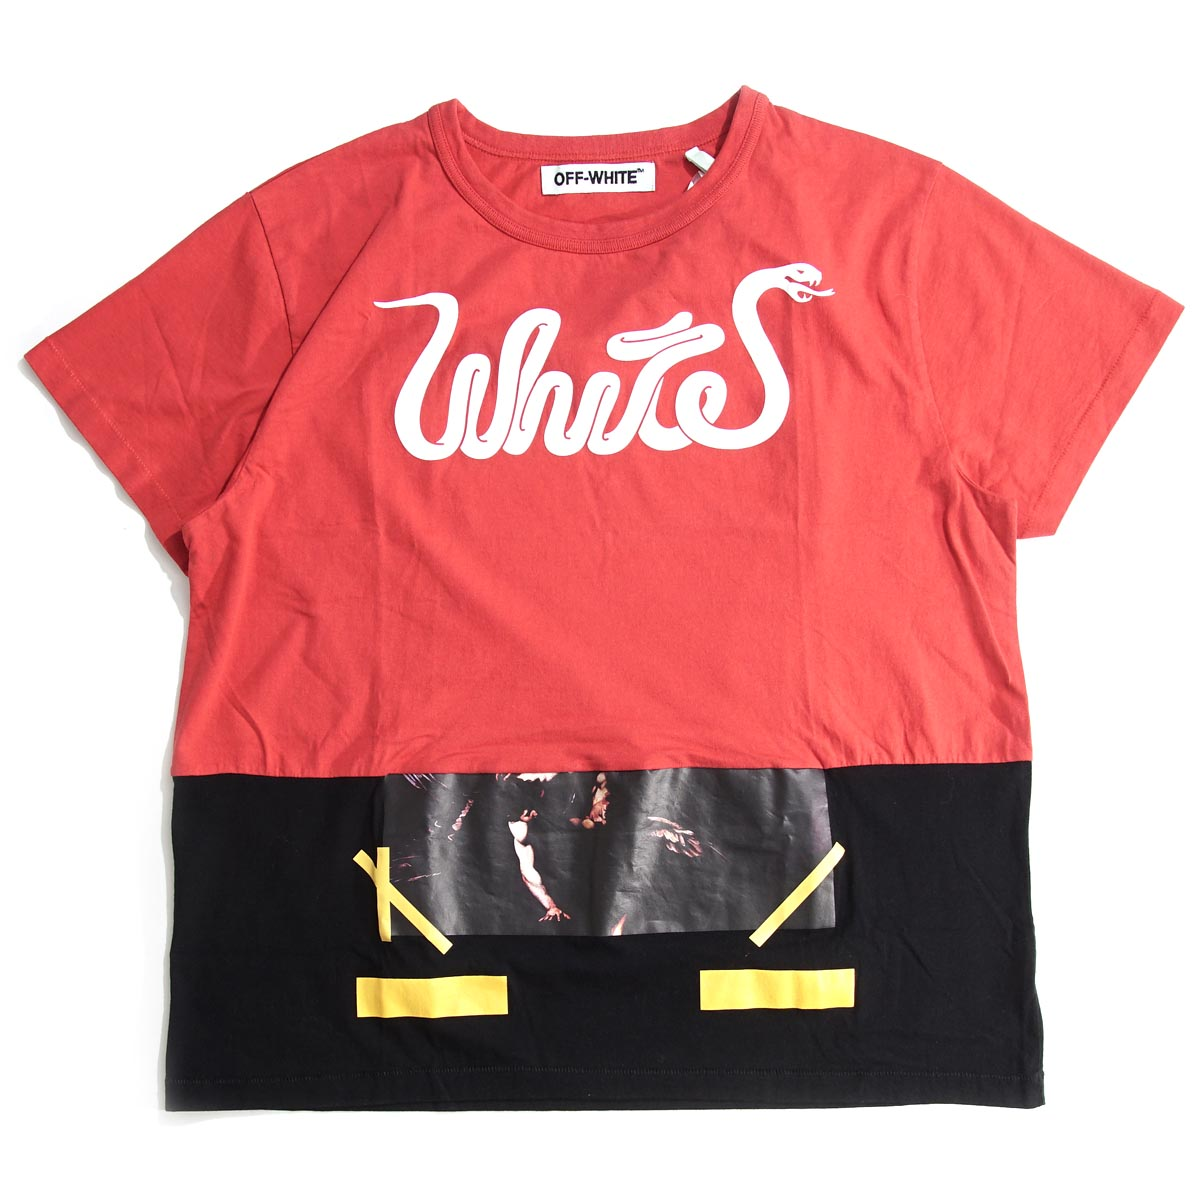 Off-white Off-White crew neck T-shirt WHITE PATCHWORK TEE omaa012f 16185056 men